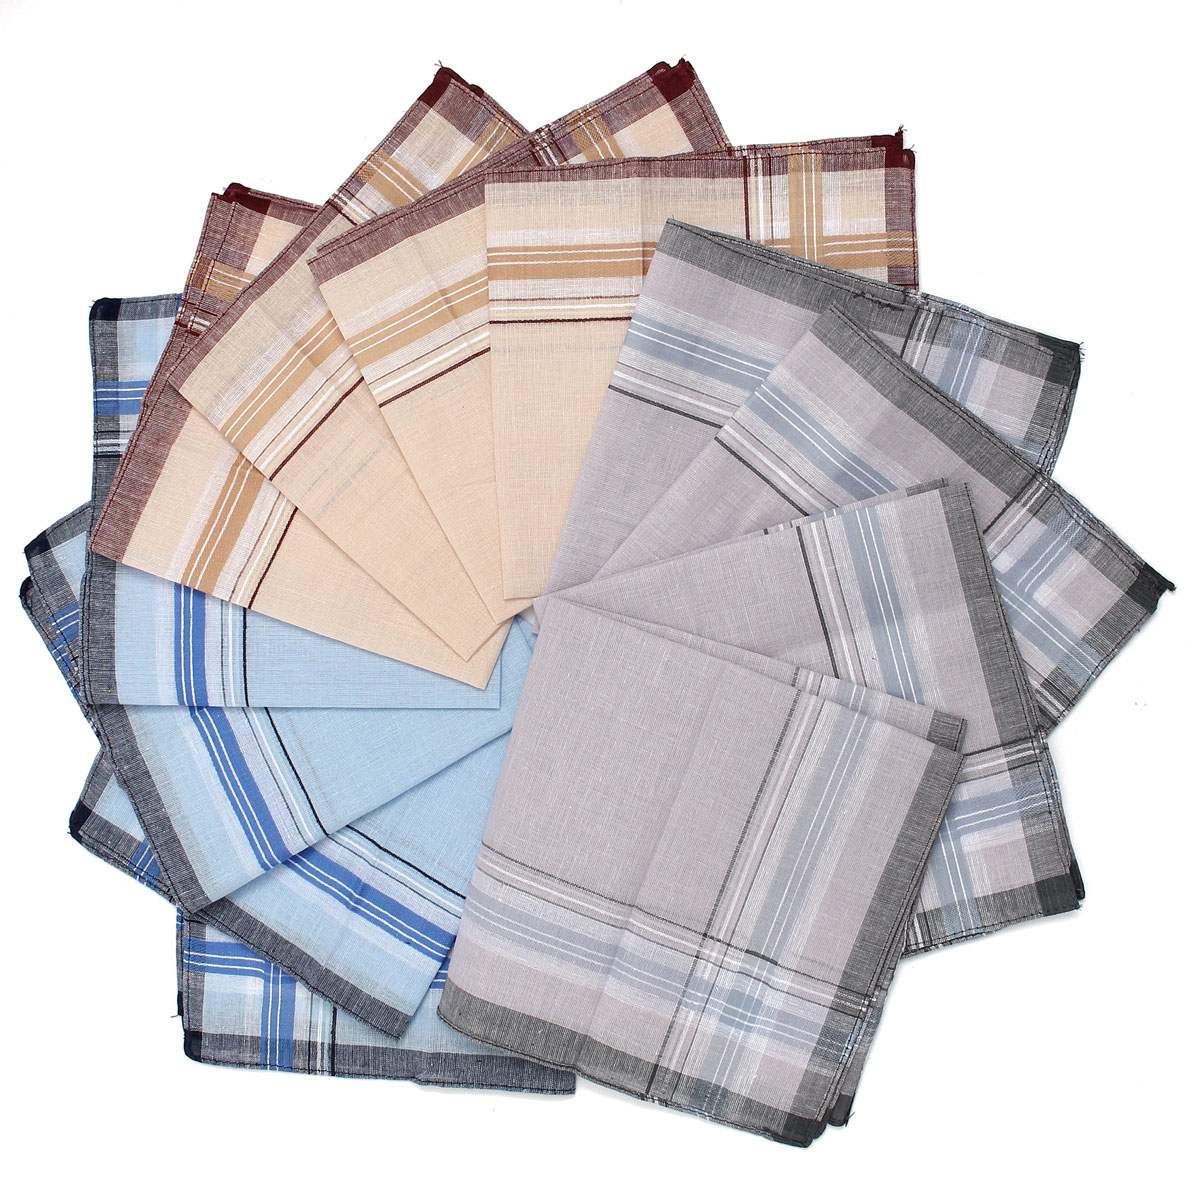 12pcs/lot Men Plaid Square Handkerchiefs, 36x36cm Cotton Soft Vintage Men's Business Suit Pockets Handkerchief Male Grid Hanky